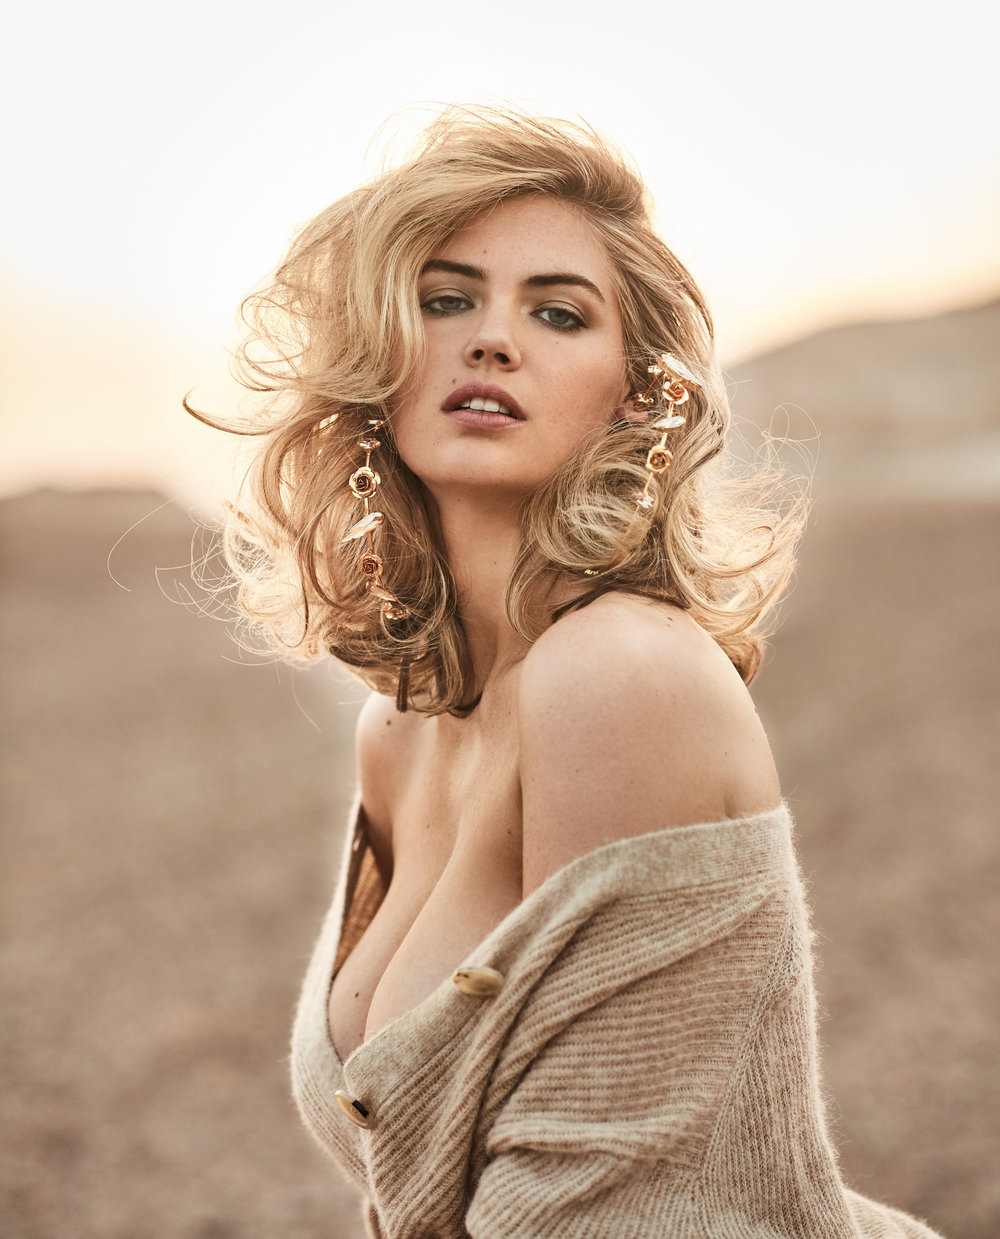 180413_GB_KATE_UPTON_Look_08_160_V6 (crop).jpg